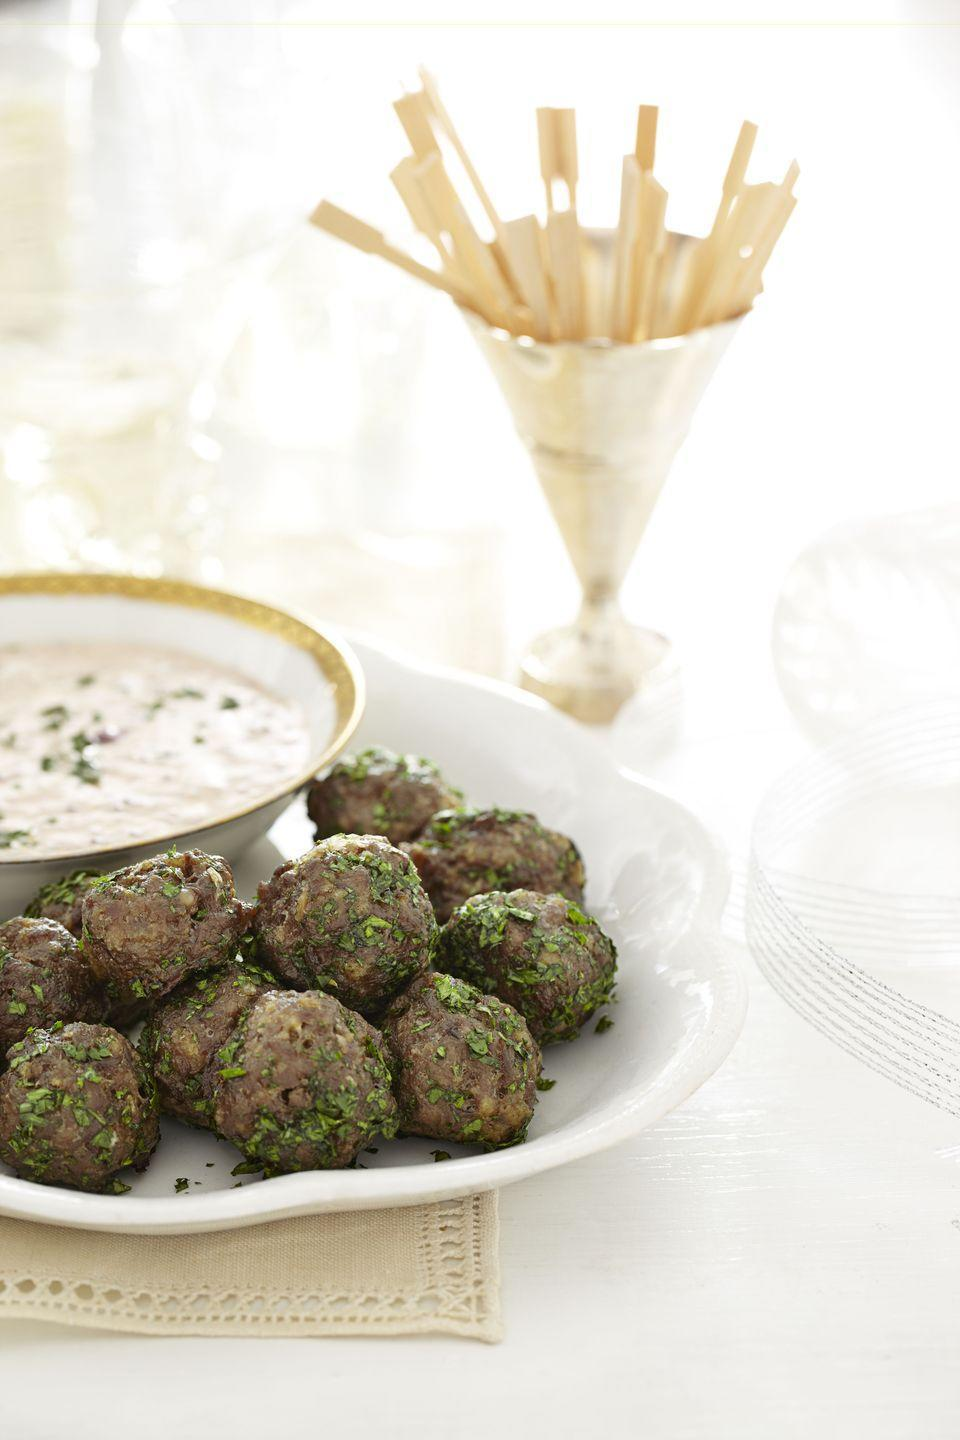 """<p>These appetizers might be small but are packed with surprising flavor. Your guests will definitely be back for second and third helpings.</p><p><em><a href=""""https://www.goodhousekeeping.com/food-recipes/a14458/cocktail-meatballs-creamy-cranberry-sauce-recipe-ghk1212/"""" rel=""""nofollow noopener"""" target=""""_blank"""" data-ylk=""""slk:Get the recipe for Cocktail Meatballs with Creamy Cranberry Sauce »"""" class=""""link rapid-noclick-resp"""">Get the recipe for Cocktail Meatballs with Creamy Cranberry Sauce »</a></em> </p>"""